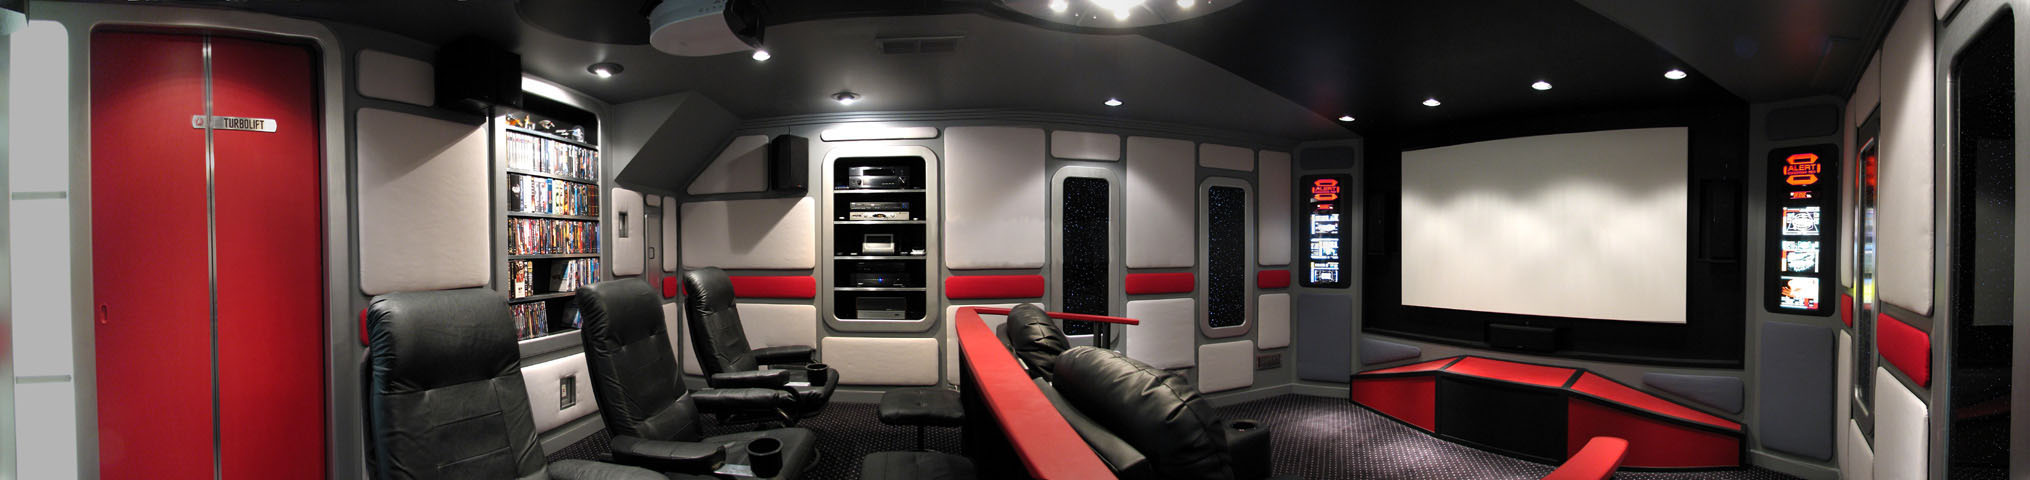 Guy-Builds-Star-Trek-Themed-Home-Cinema- Star Trek Home Theater Design Idea on scooby doo home theater, alien home theater, lost in space home theater, death star home theater, prometheus home theater, guardians of the galaxy home theater, batcave home theater, marvel home theater, disney home theater, dark knight home theater, indiana jones home theater, harry potter home theater, superman home theater, private home theater, doctor who home theater, sci fi home theater, diy home theater, batman home theater, finding nemo home theater, custom home theater,